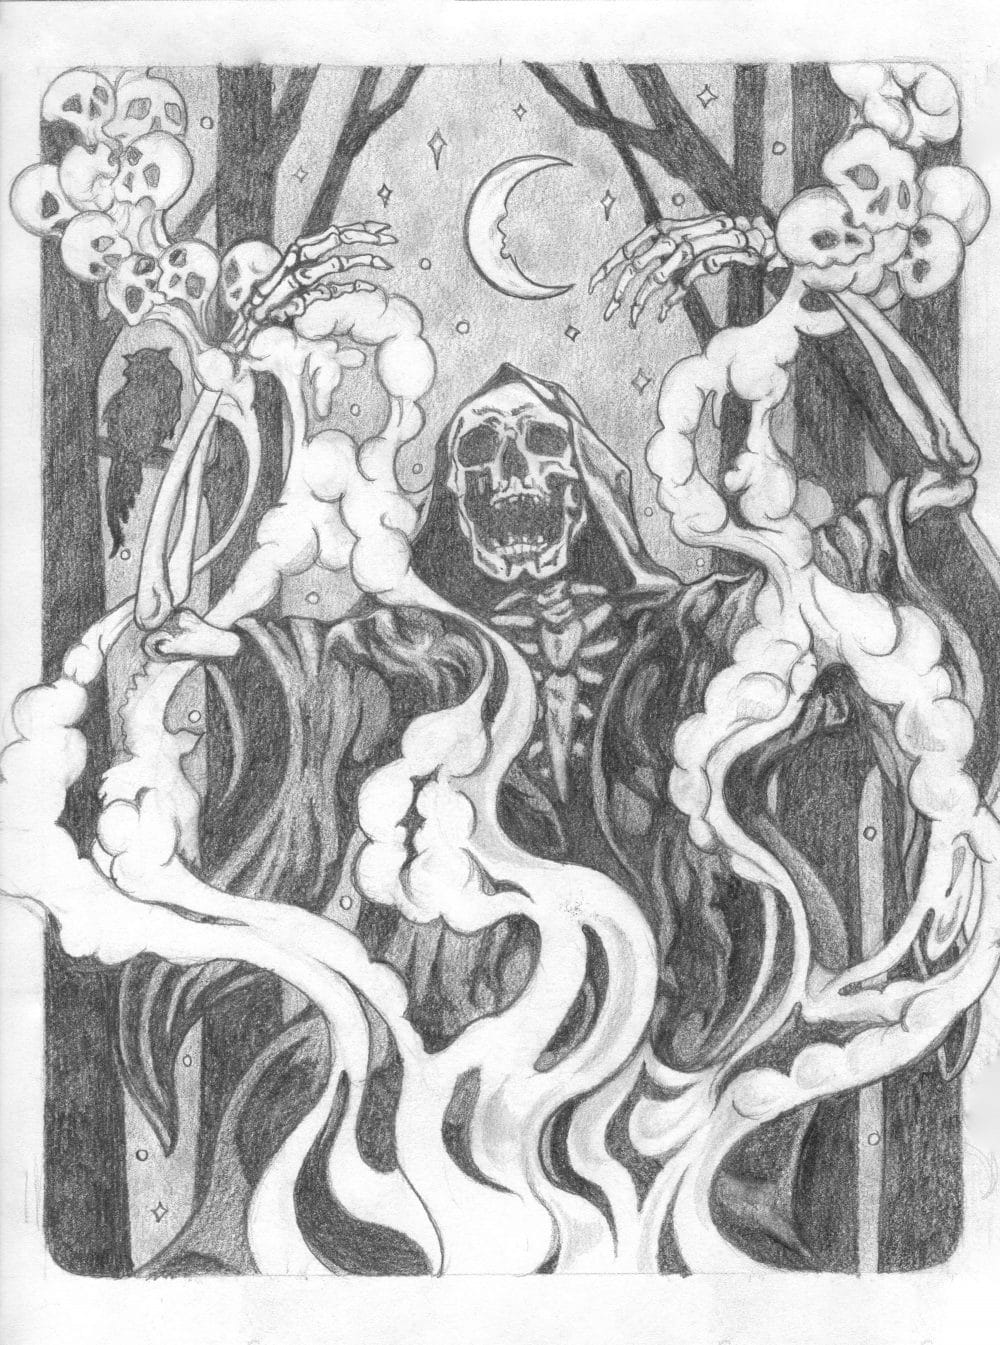 Conjuring Skeleton Sketch by Rebecca Magar - Wailing Wizard